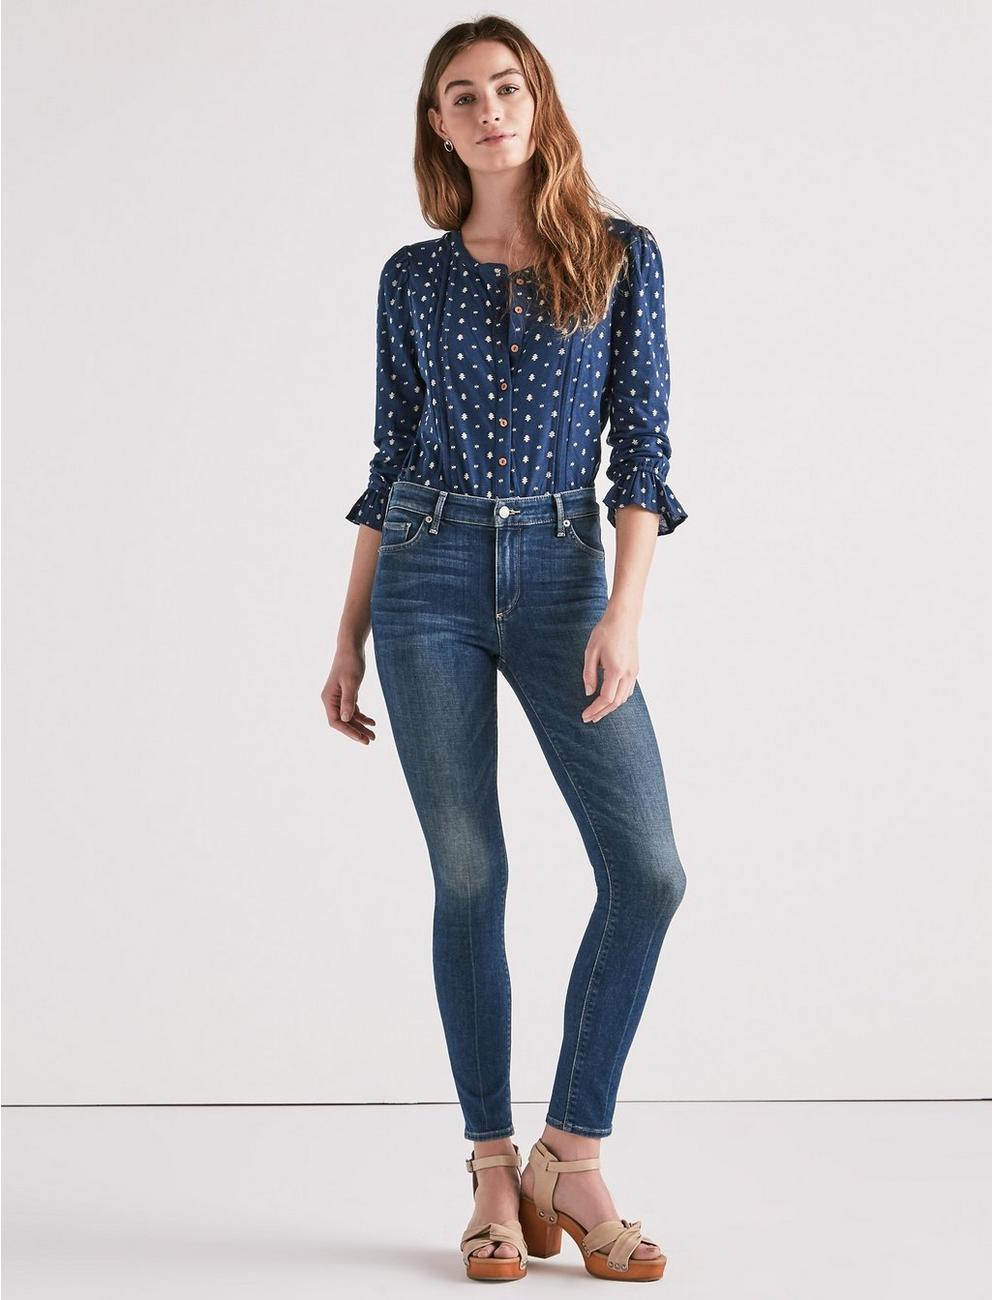 BRIDGETTE HIGH RISE SKINNY JEAN IN LEAGUE CITY, LEAGUE CITY